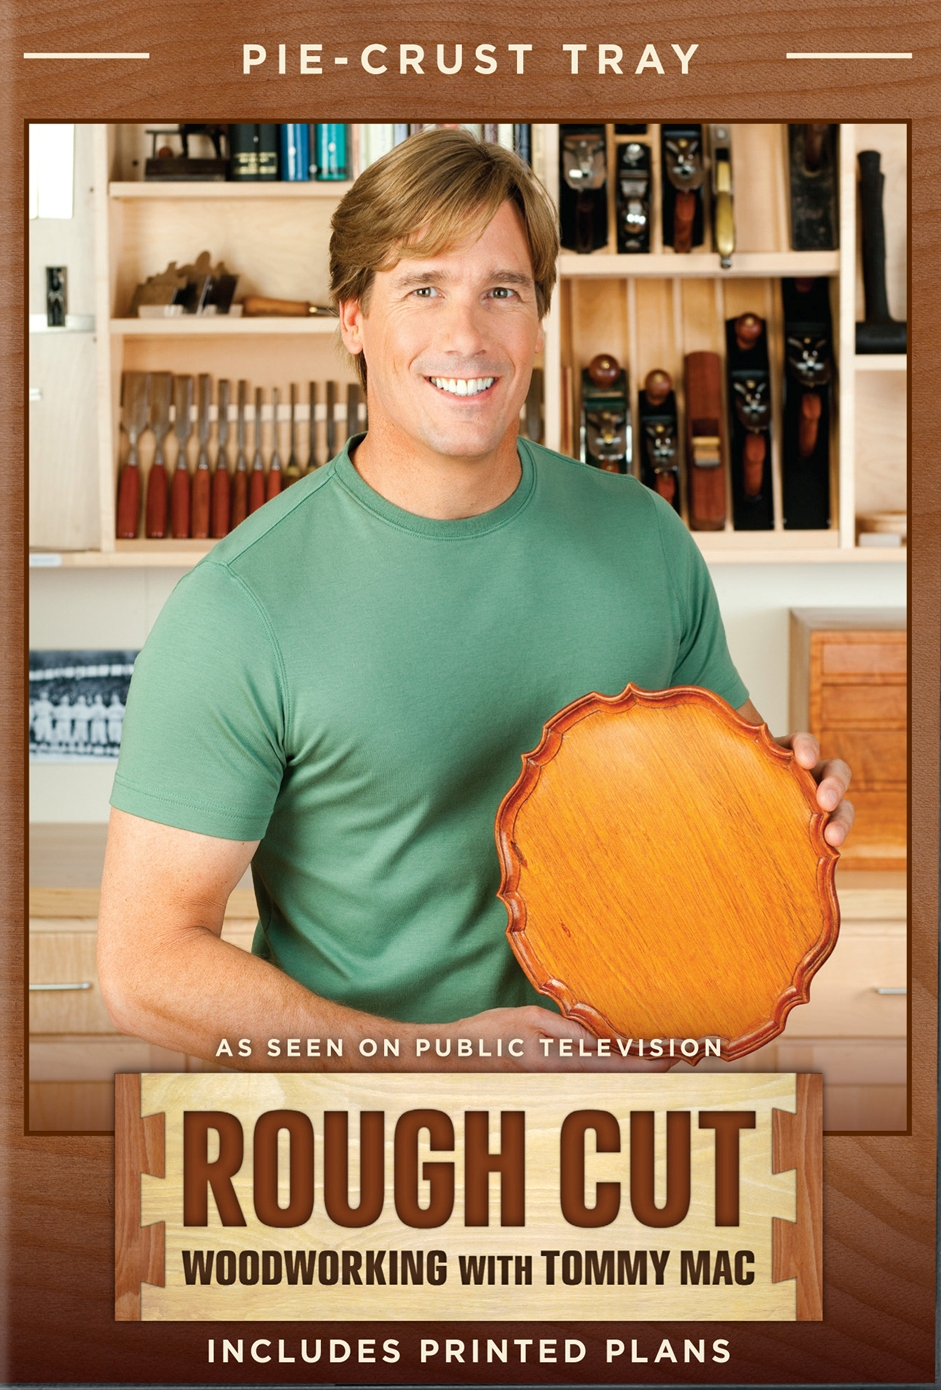 Rough Cut - Woodworking with Tommy Mac: Pie-Crust Tray